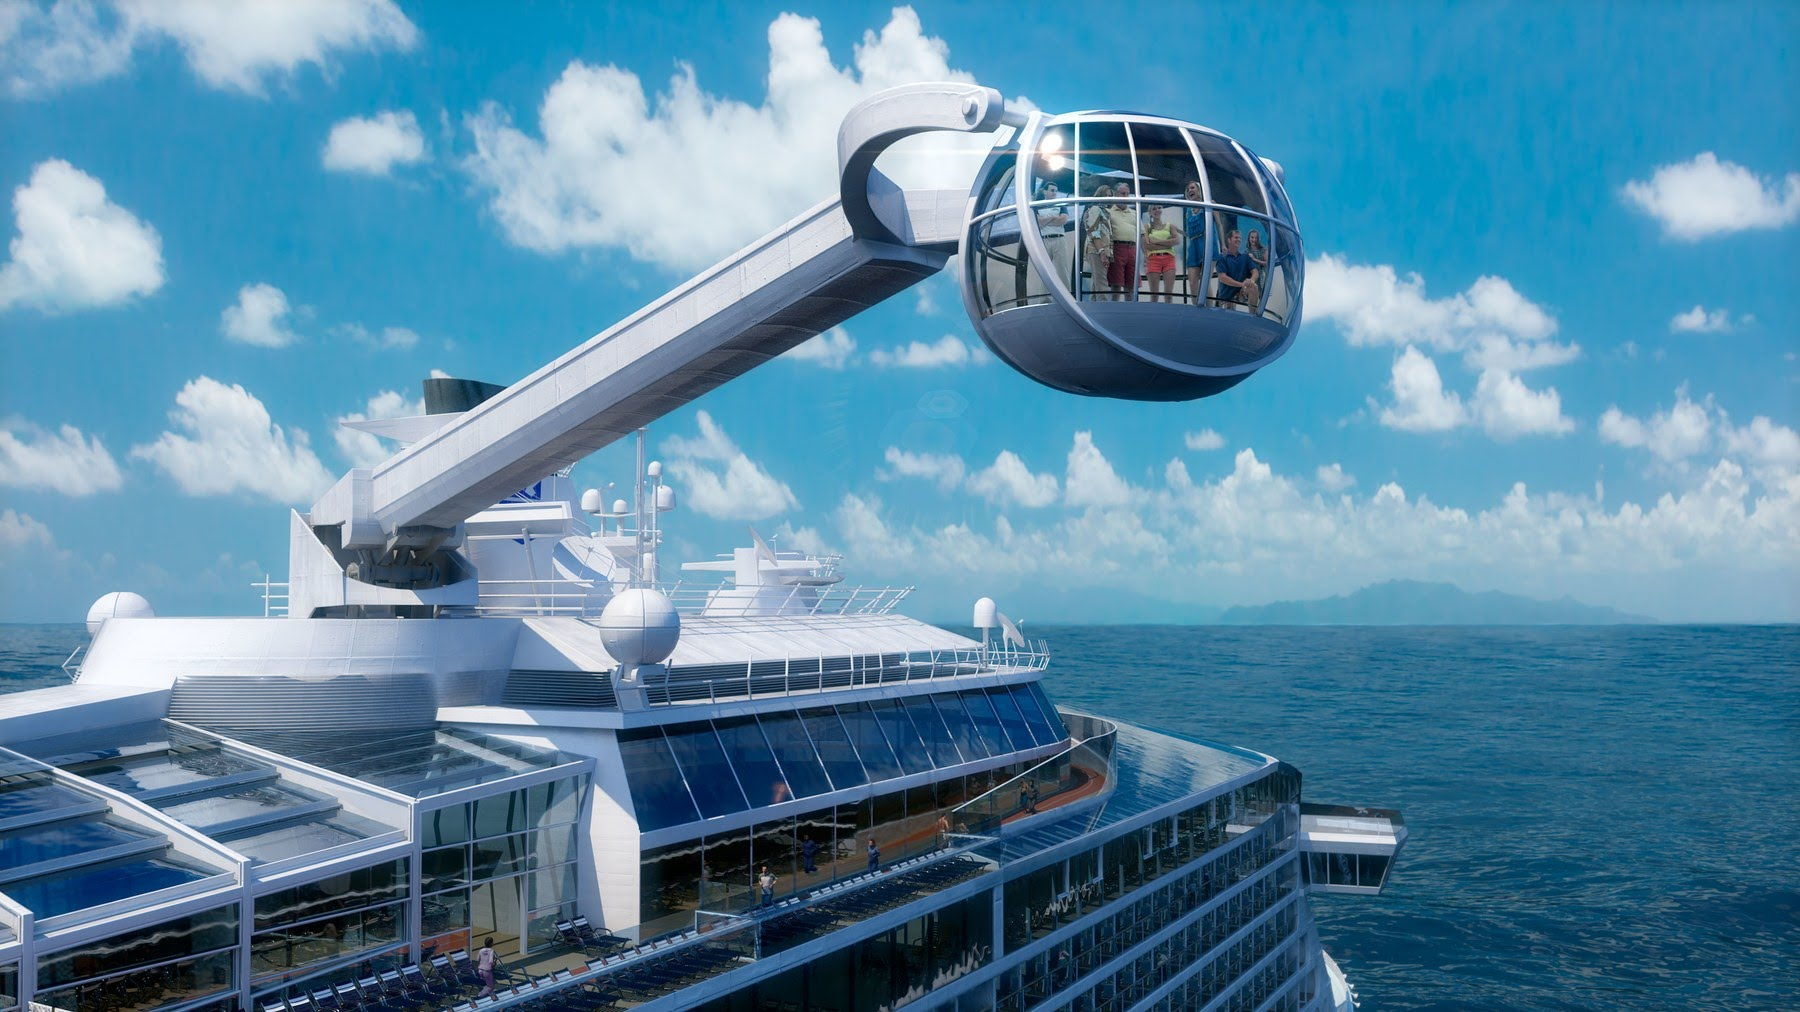 Outrageous things to do on a cruise ship